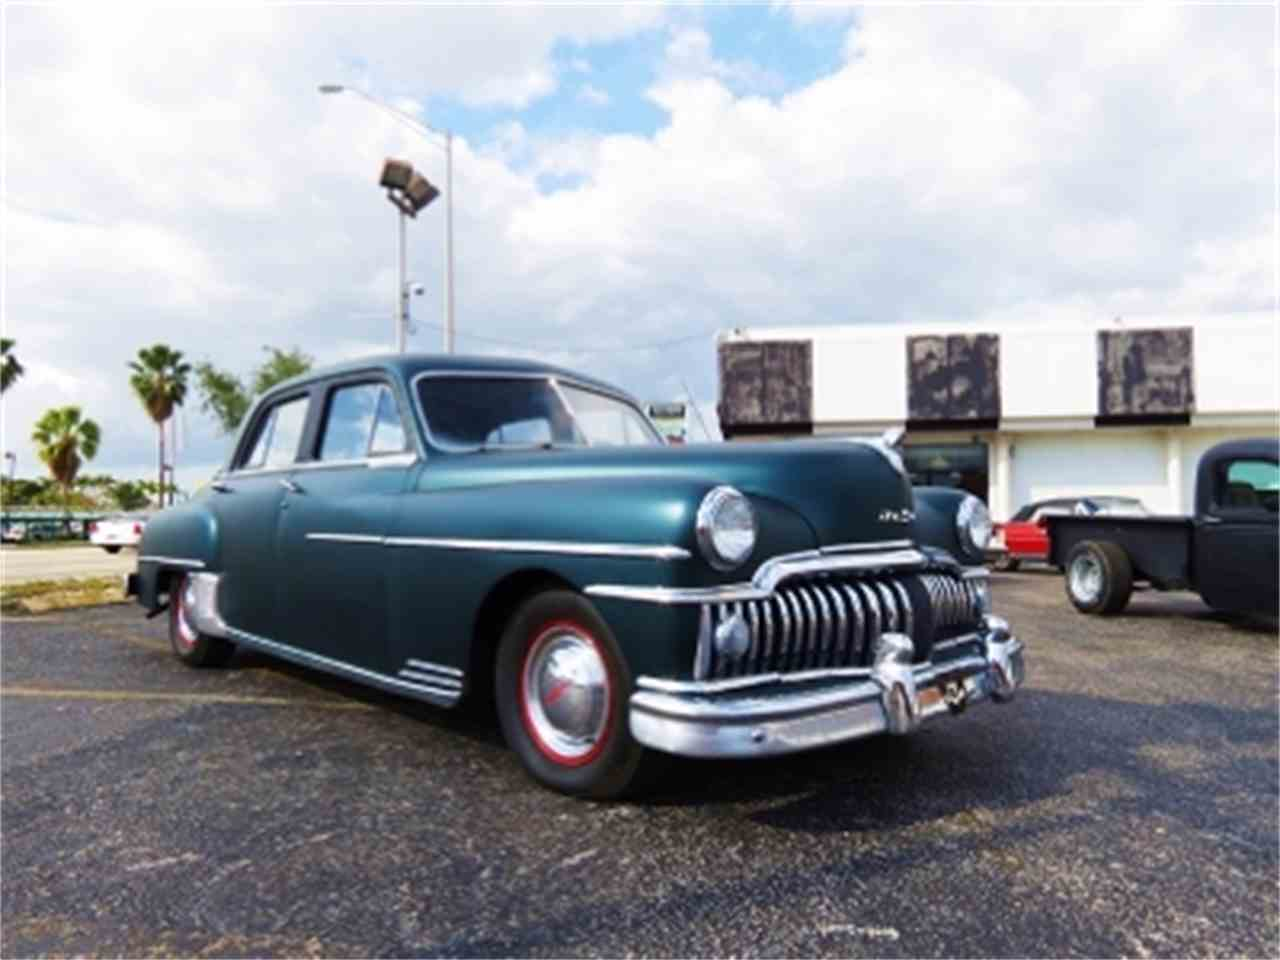 1950 desoto 4 dr sedan for sale cc 639424. Black Bedroom Furniture Sets. Home Design Ideas